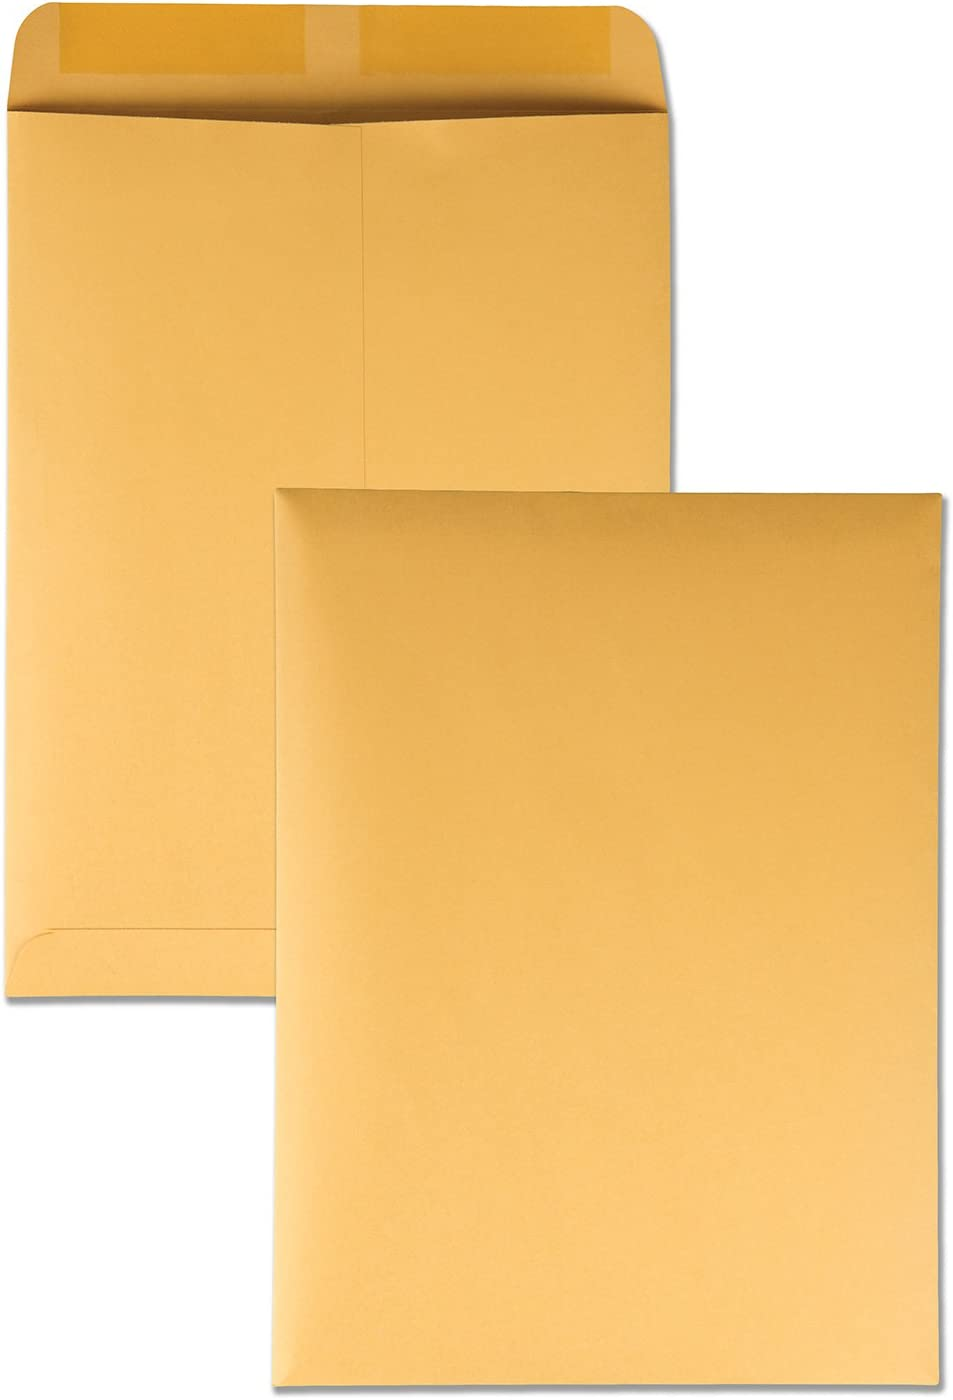 Quality Park 41465 Quality Park Catalog Envelopes, Heavyweight/Gummed, 9x12, 28lb, Kraft, 250/Box (QUA41465) : Office Products